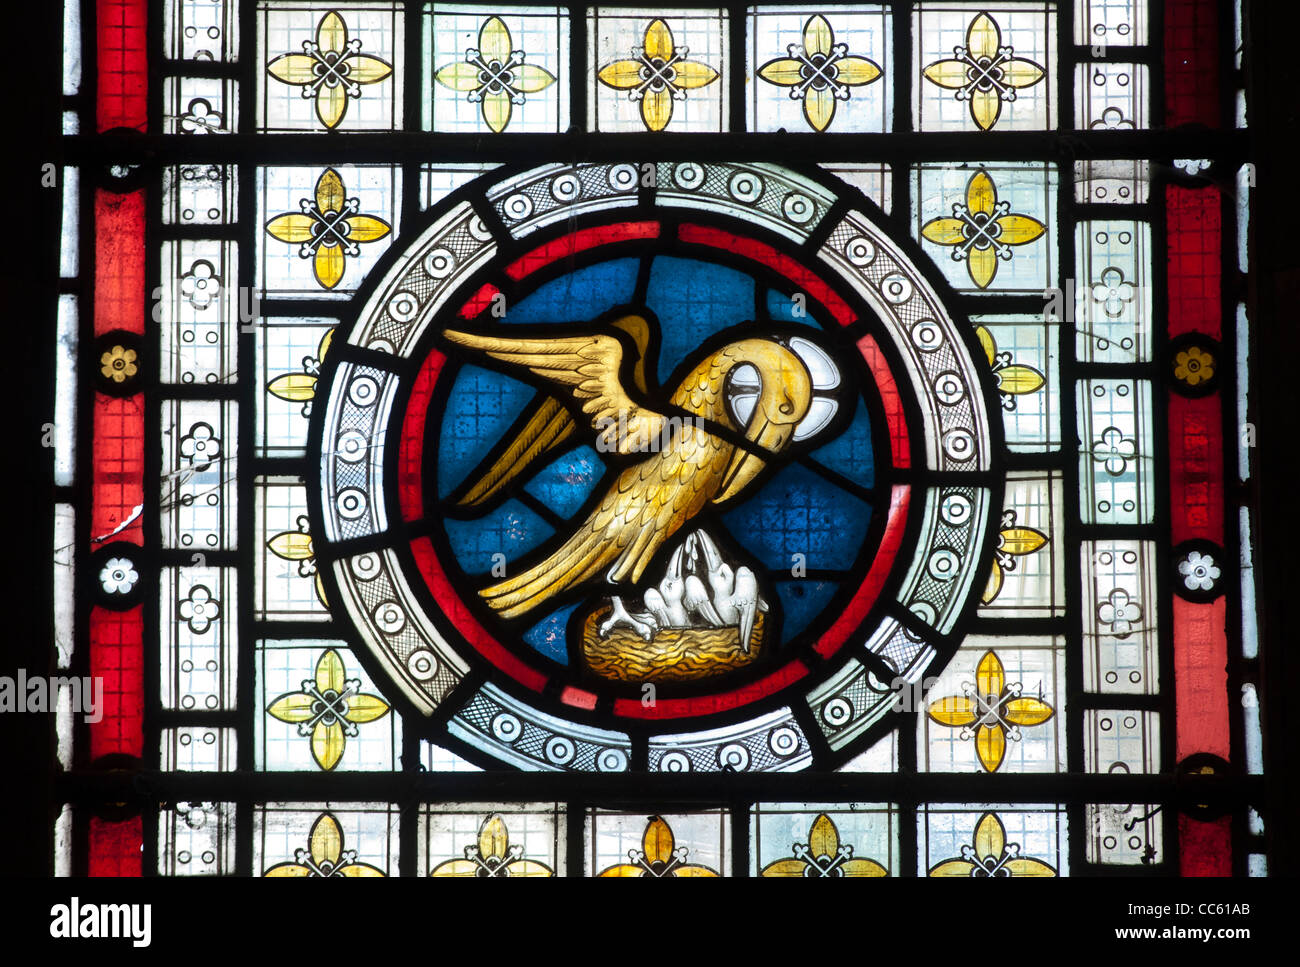 Pelican in its piety stained glass, St. Matthew`s Church, Salford Priors, Warwickshire, England, UK - Stock Image